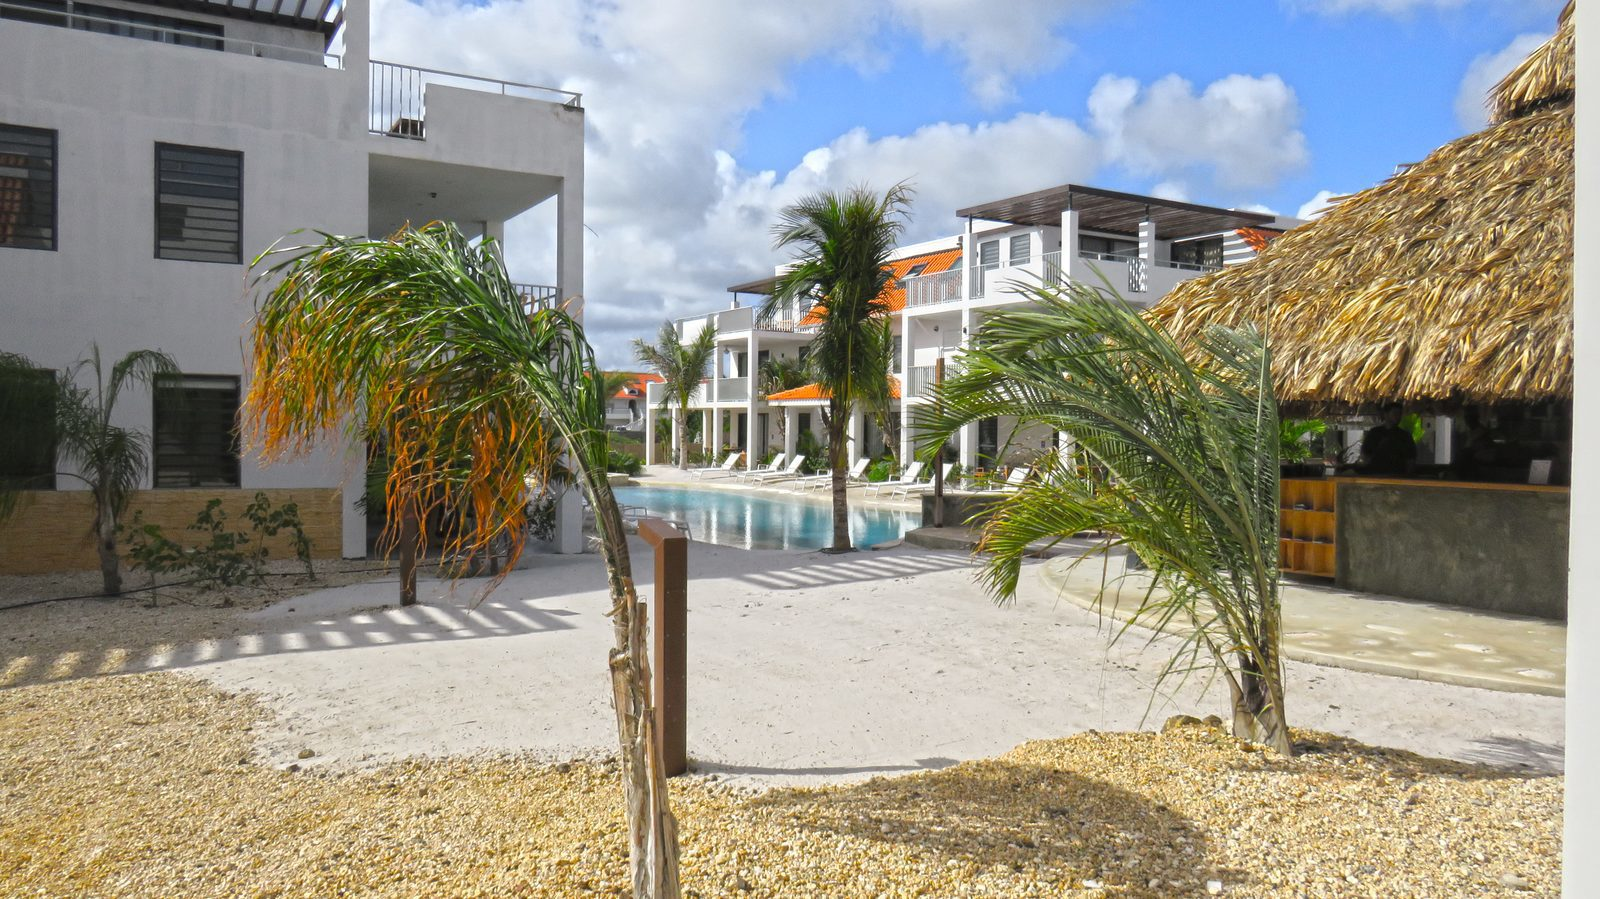 Looking for accommodations on Bonaire? Take a look at the available accommodations at our resort. Child-friendly, luxurious apartments, equipped with all the comforts you could wish for!